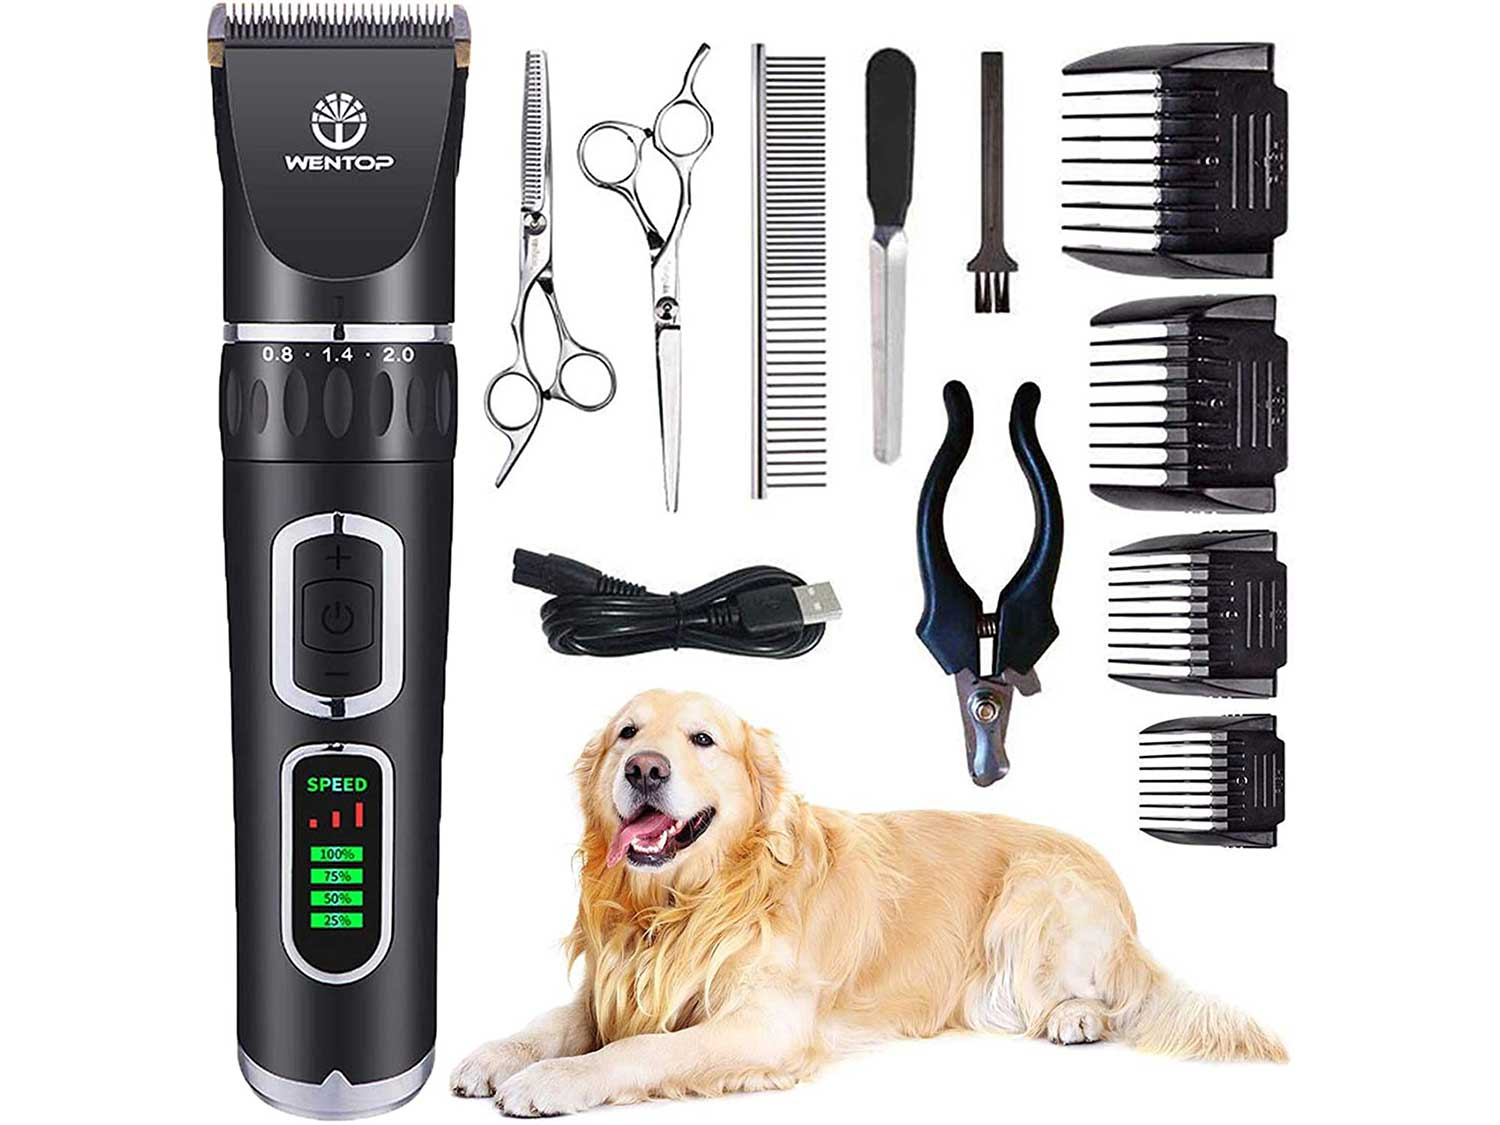 WenTop Dog Clippers, Professional 3-Speed Grooming Clippers, Rechargeable, Cordless Hair Clippers, Pet Grooming Scissor, Nail Clippers, Low Noise Electric Clippers for Dog, Cat and Other Pets